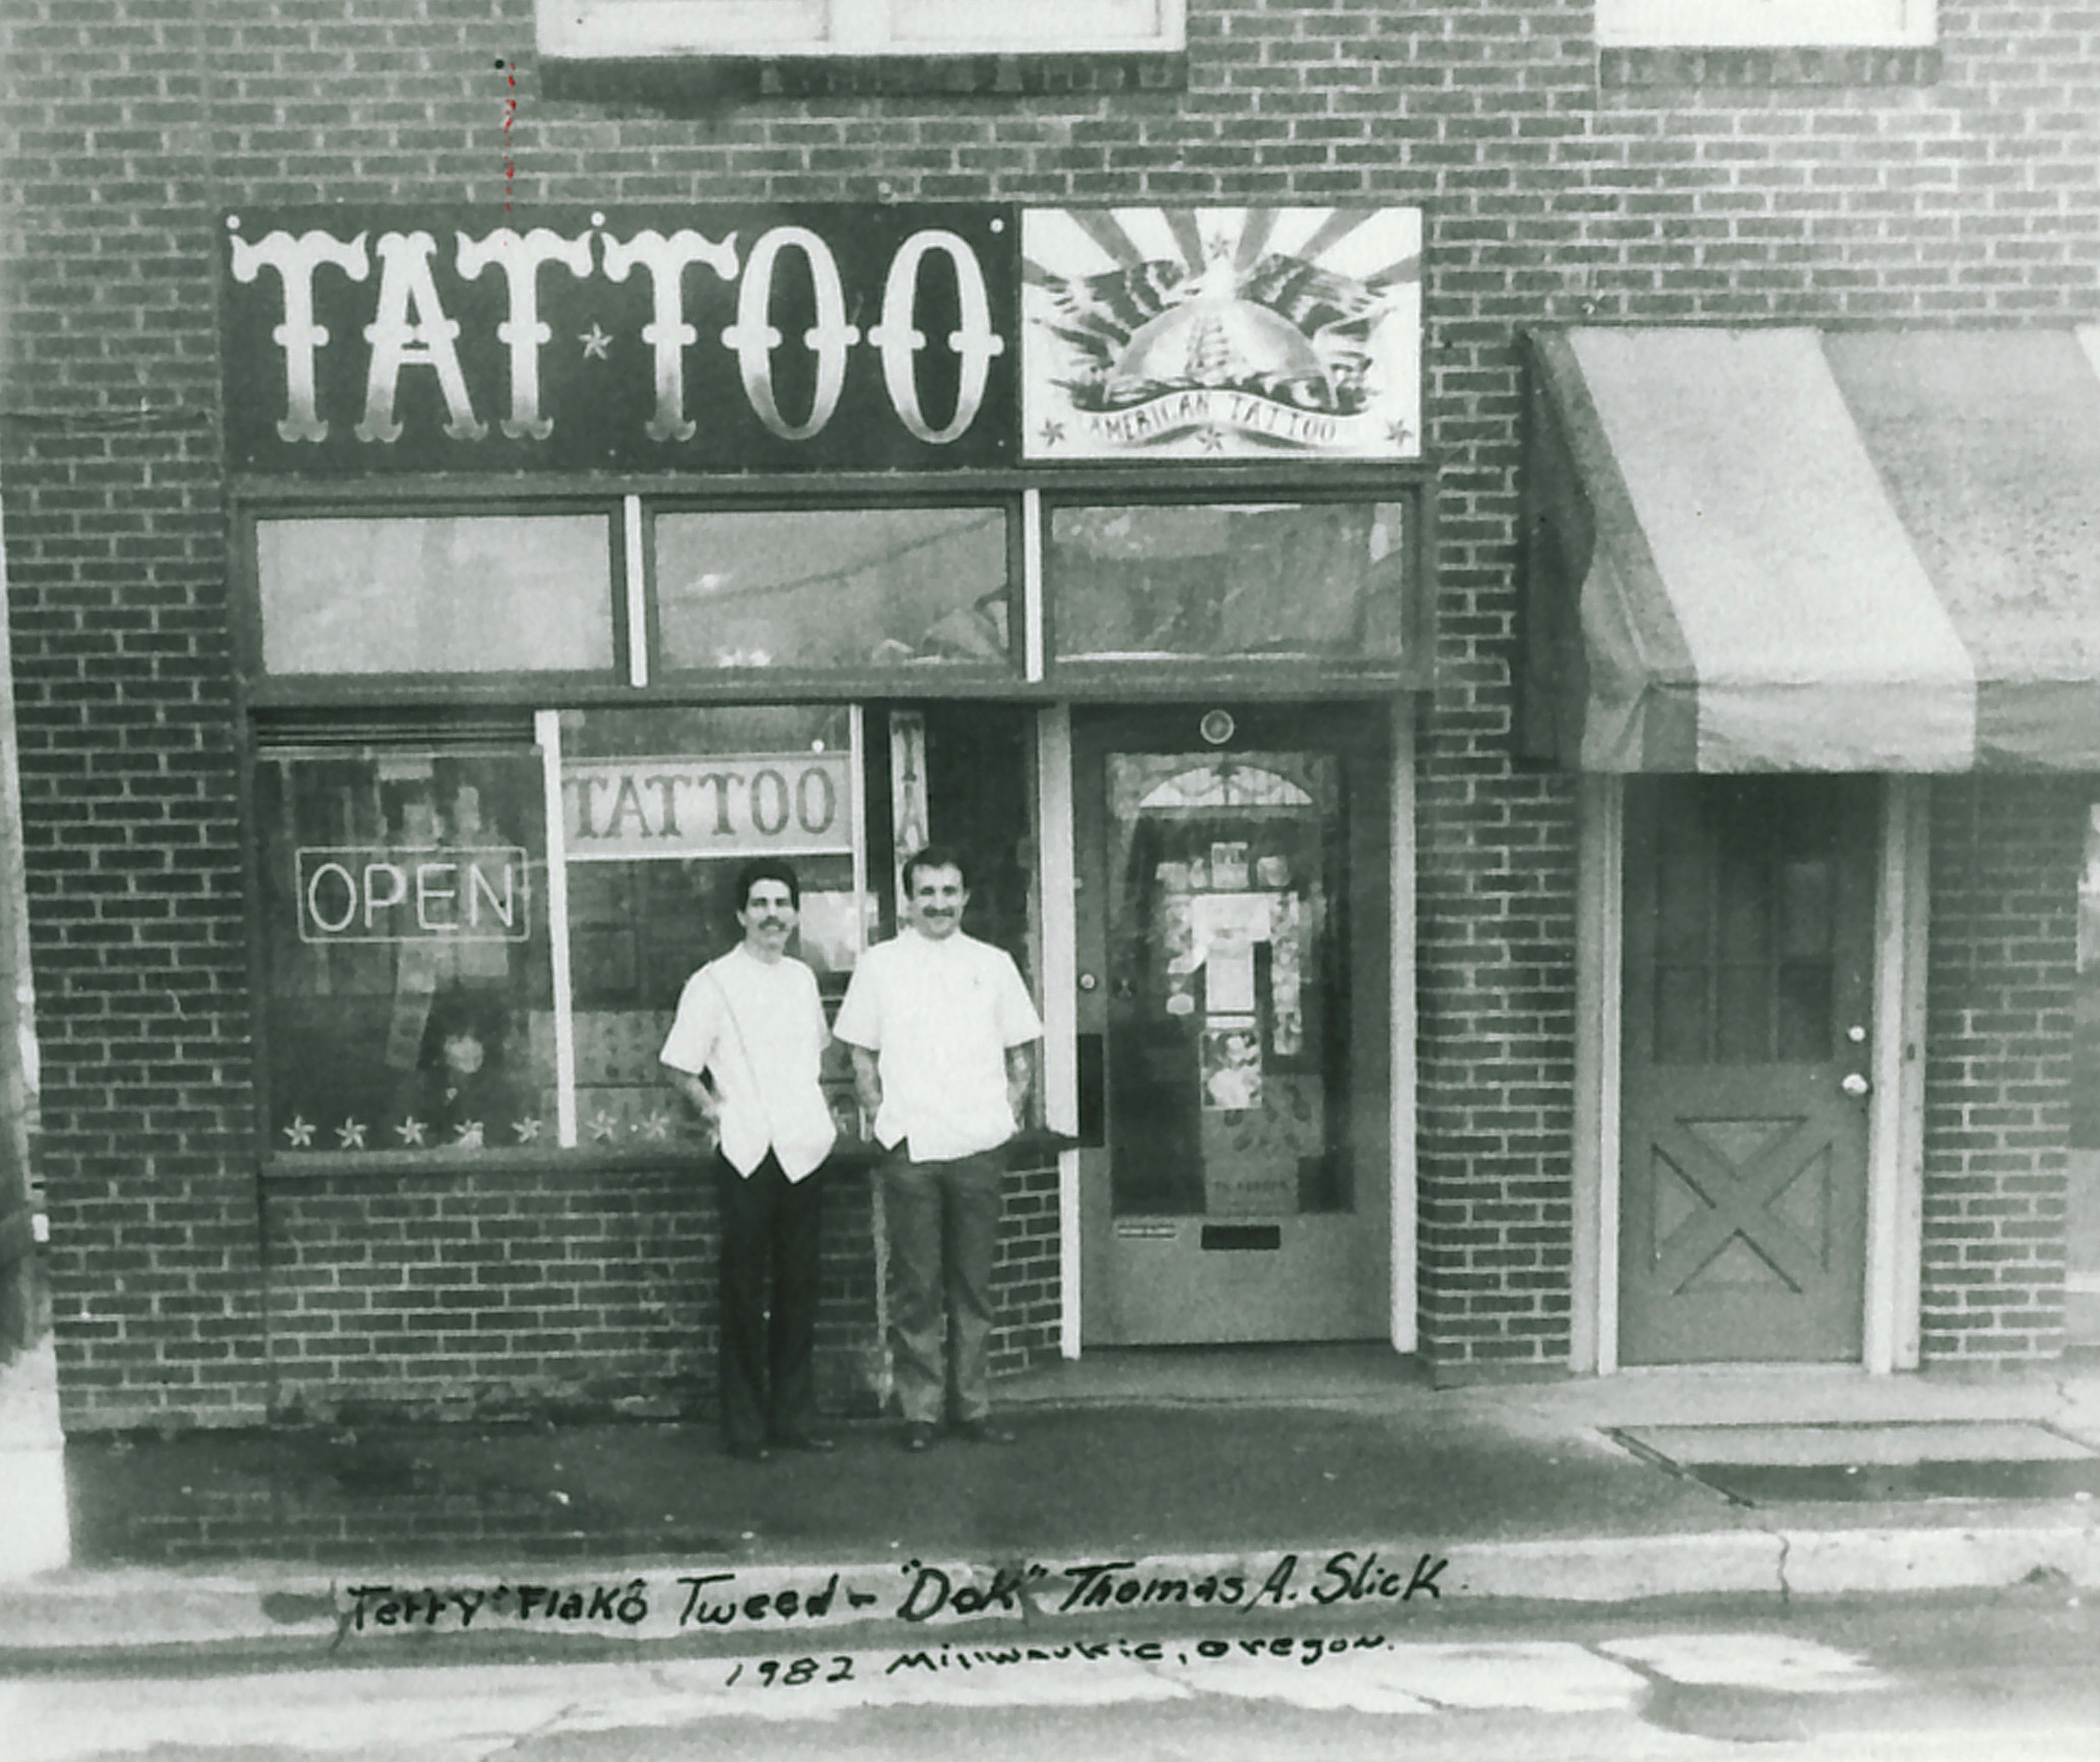 Tattoo Shop Fronts